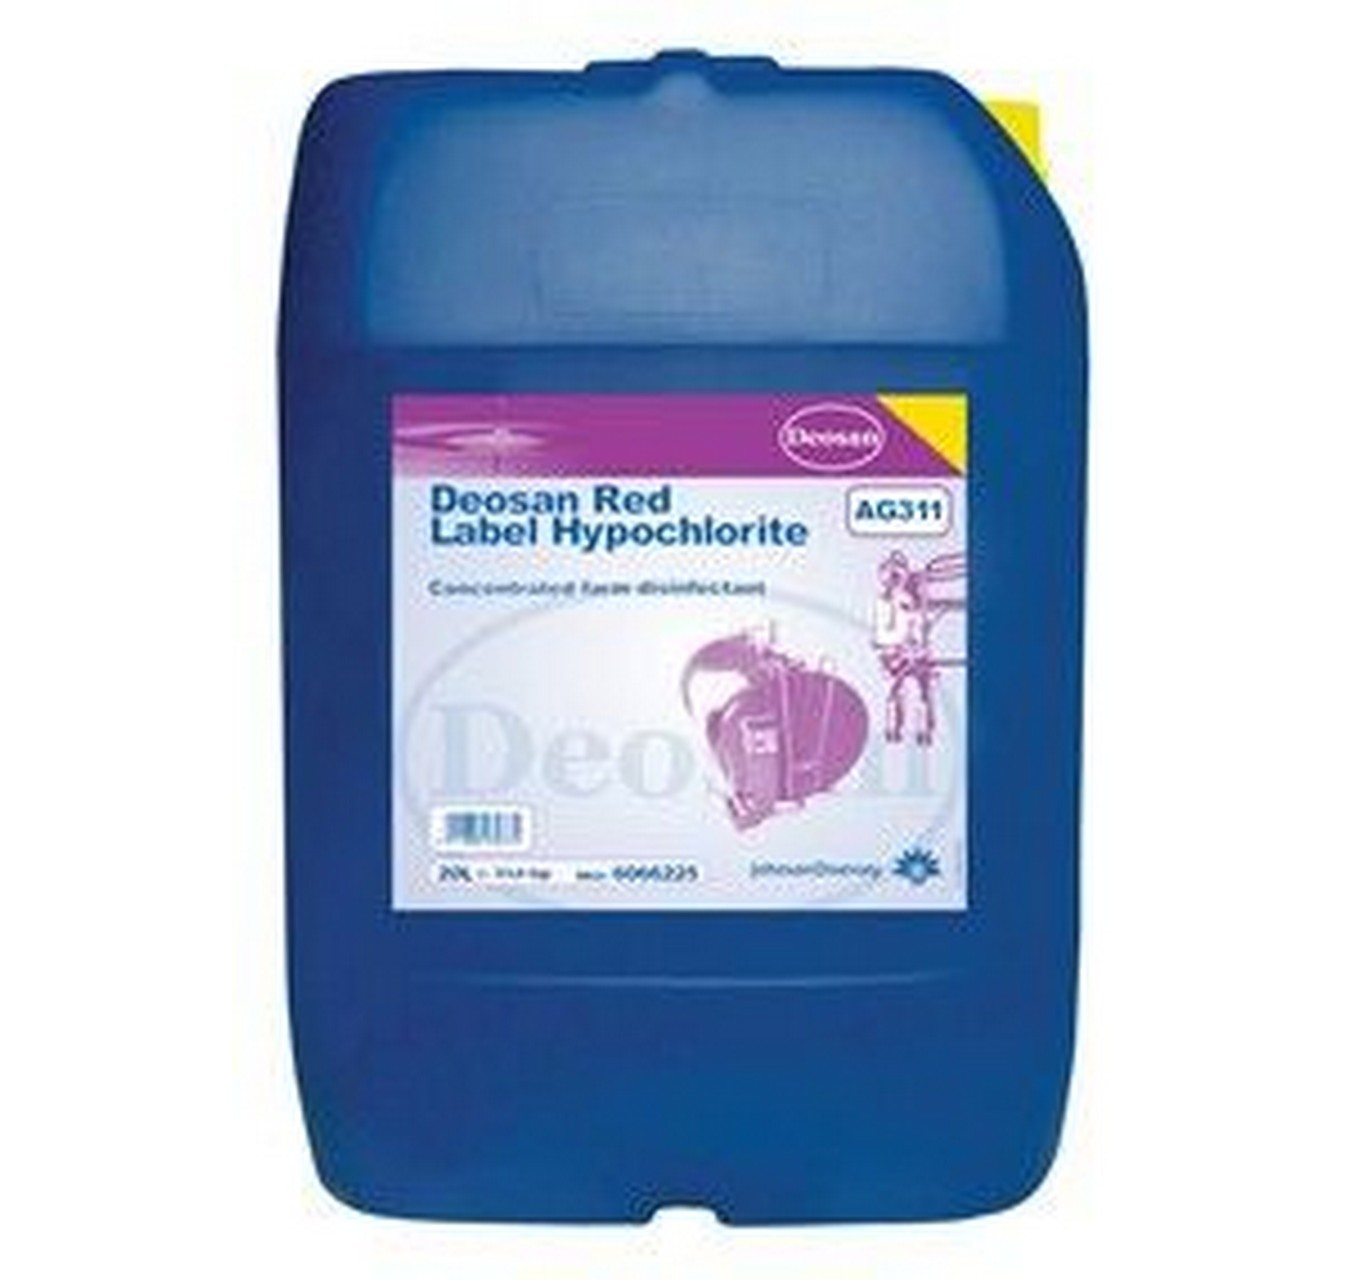 Red Label Hypochlorite 20ltr